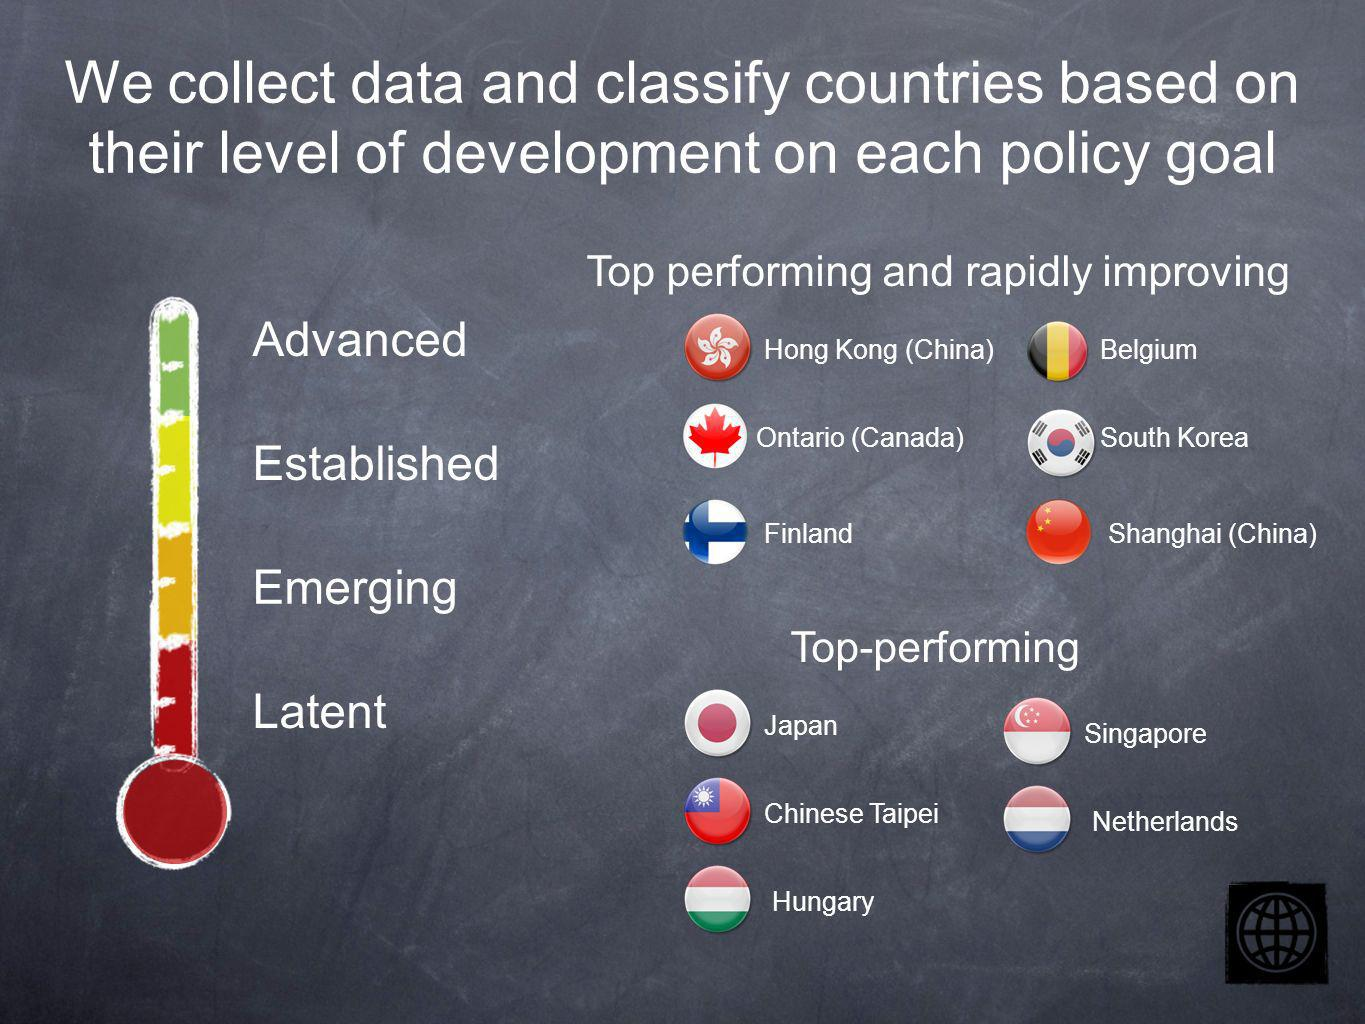 We collect data and classify countries based on their level of development on each policy goal Advanced Established Emerging Latent Top performing and rapidly improving Top-performing Hong Kong (China) Ontario (Canada) Finland Belgium South Korea Shanghai (China) Japan Chinese Taipei Hungary Singapore Netherlands